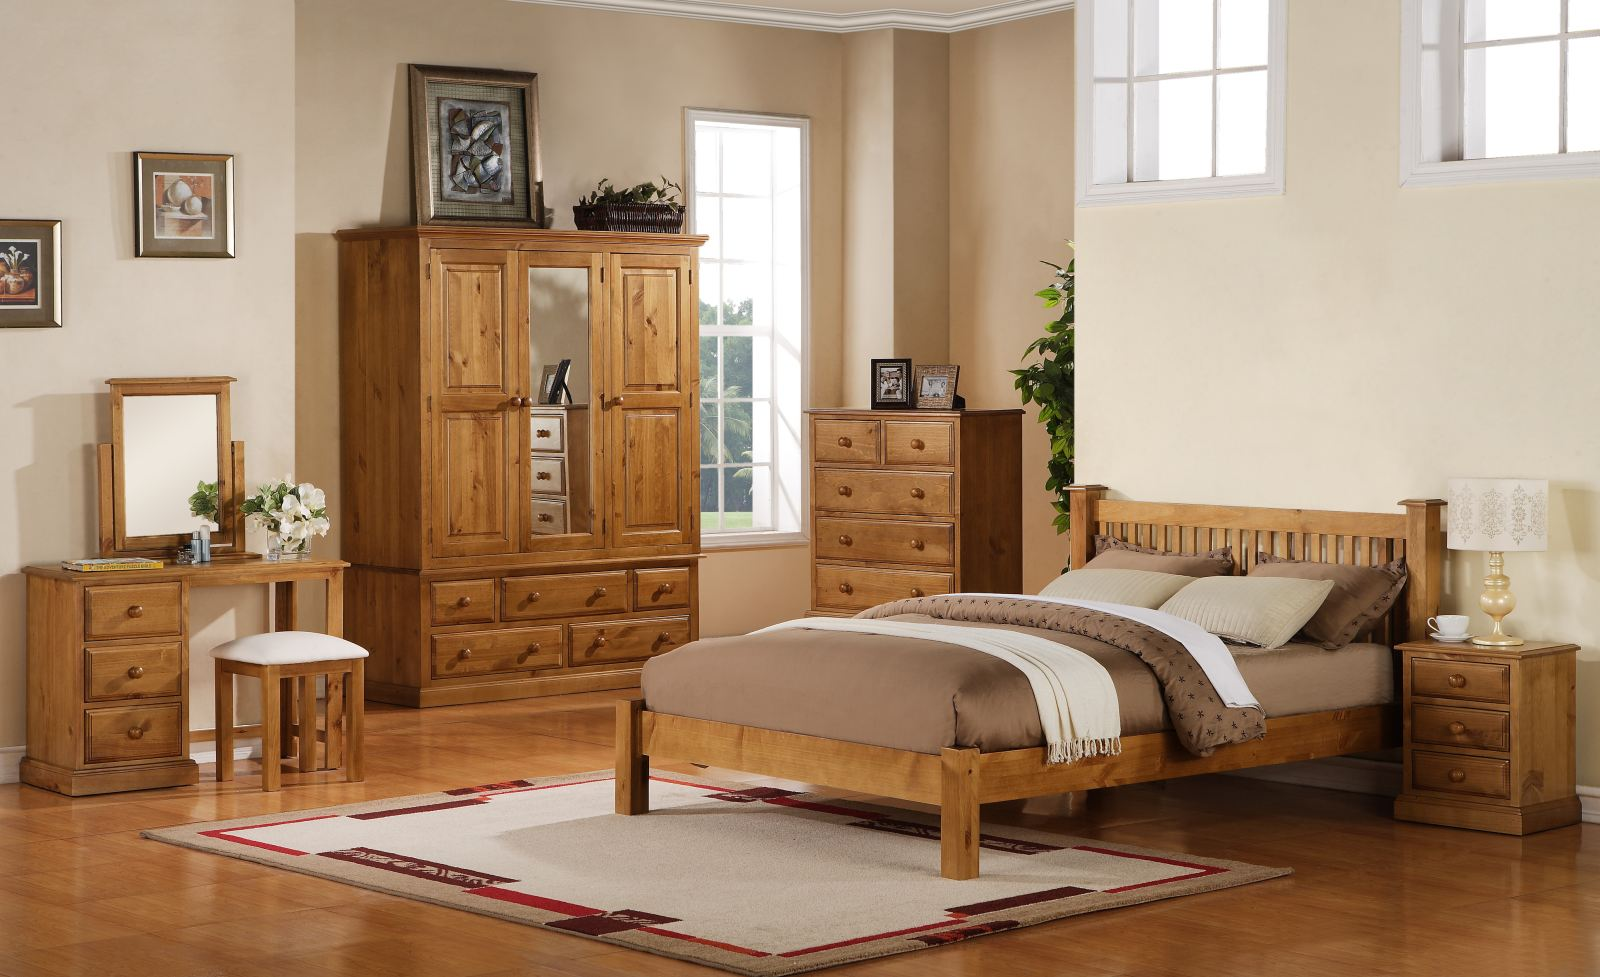 Pine Furniture Comments Off On Pine Bedroom Furniture Shopping Tips